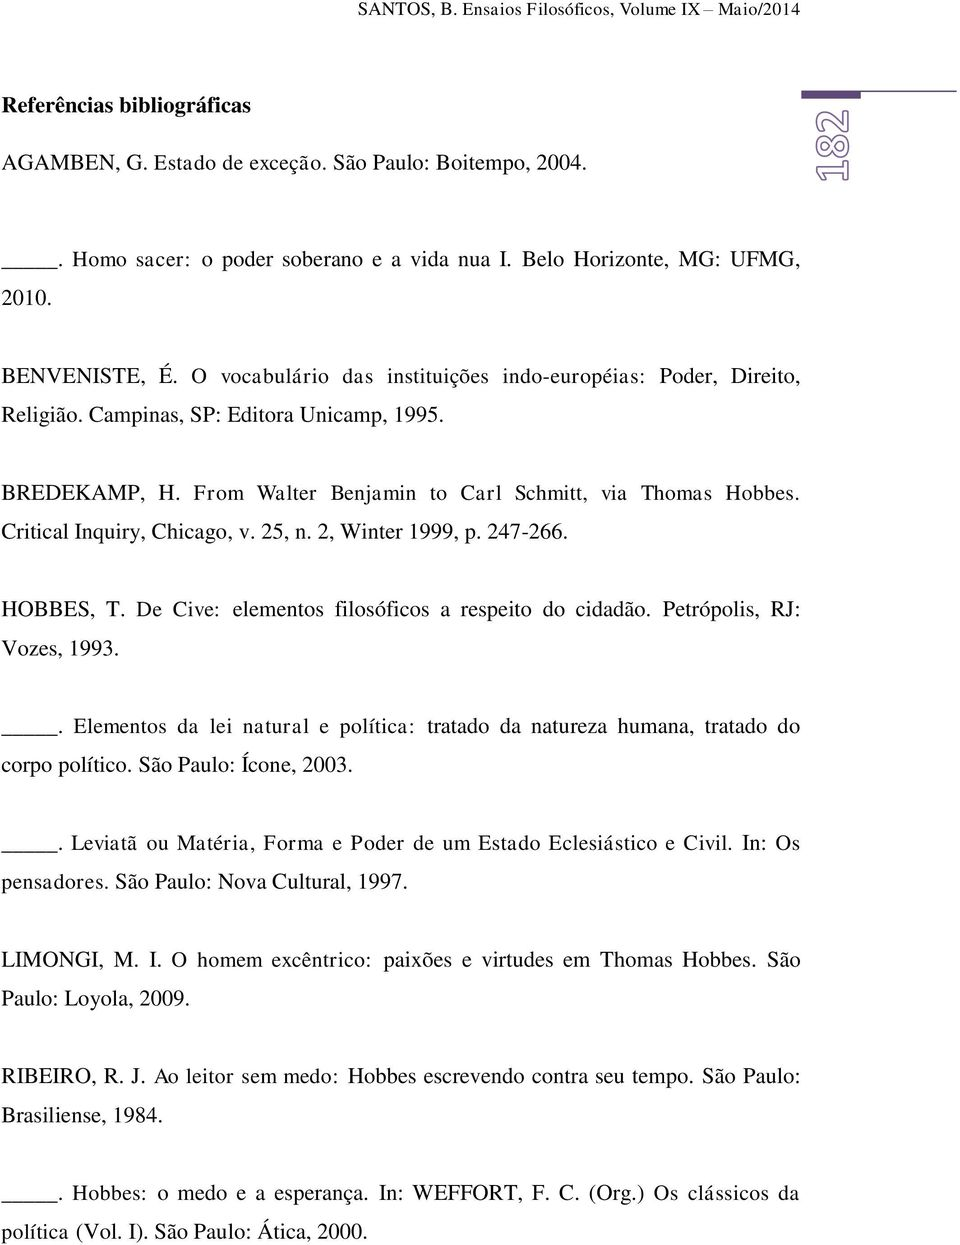 From Walter Benjamin to Carl Schmitt, via Thomas Hobbes. Critical Inquiry, Chicago, v. 25, n. 2, Winter 1999, p. 247-266. HOBBES, T. De Cive: elementos filosóficos a respeito do cidadão.